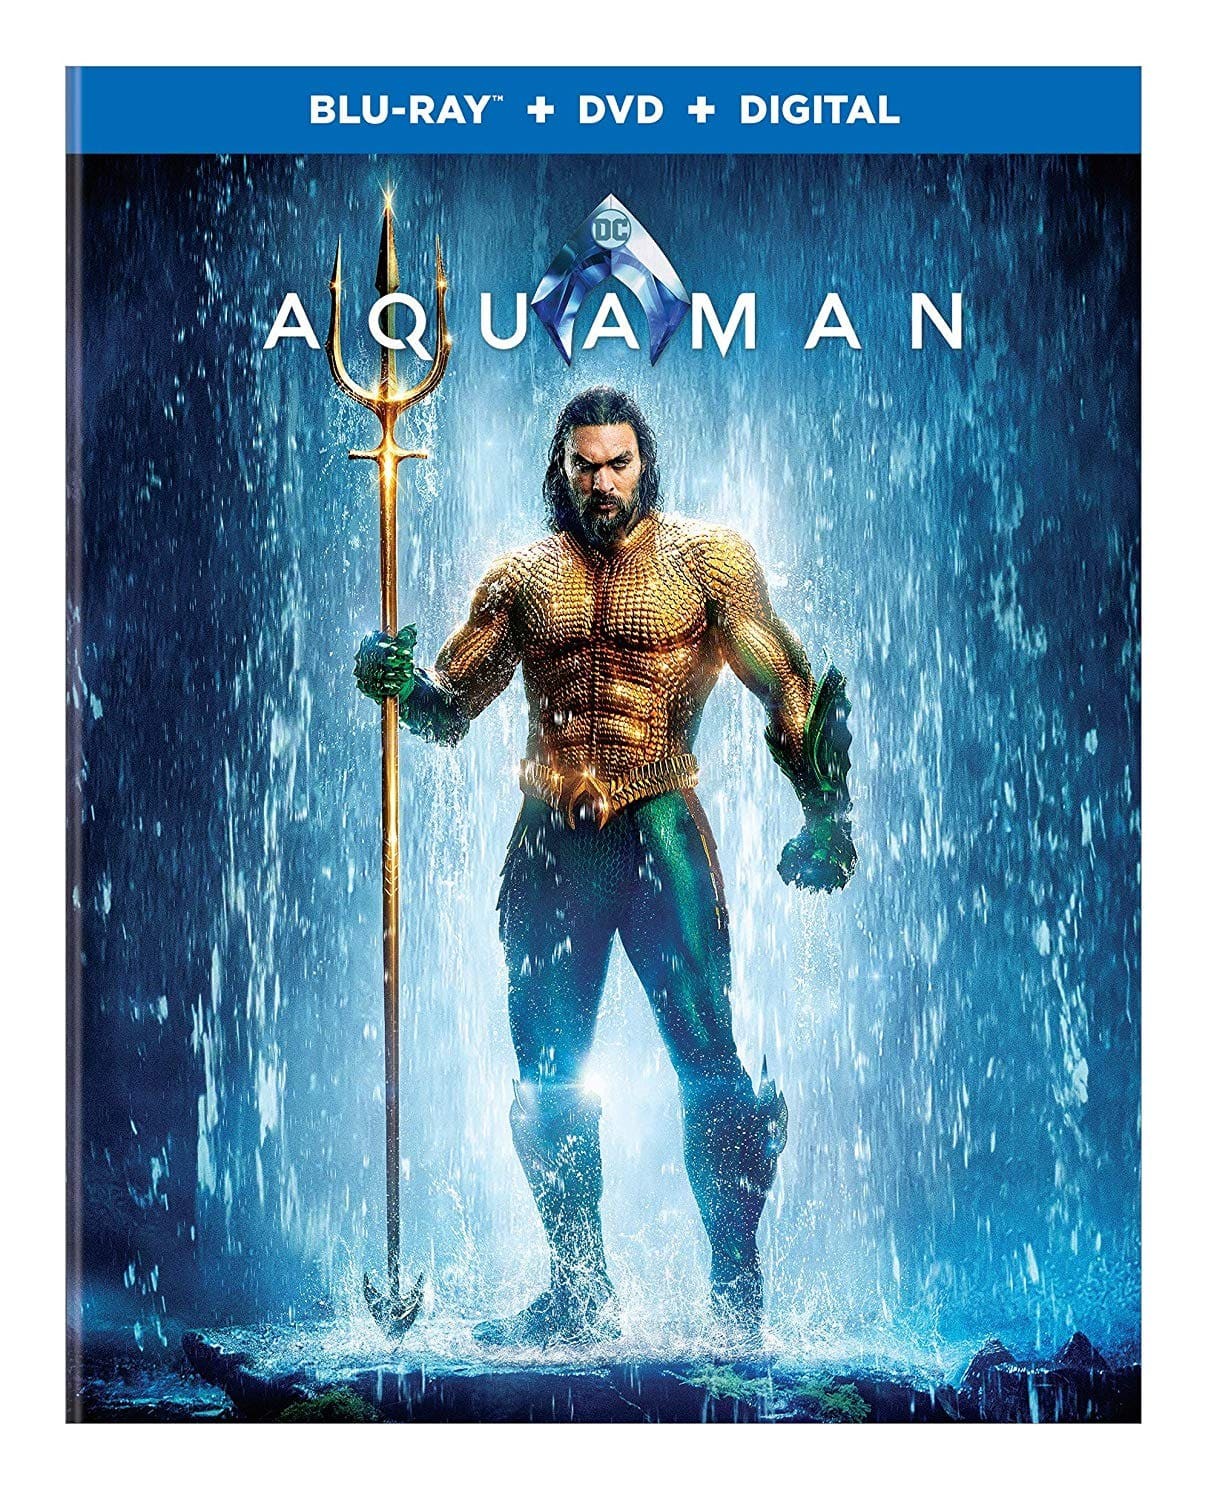 Aquaman Blu-ray $15 @ Amazon